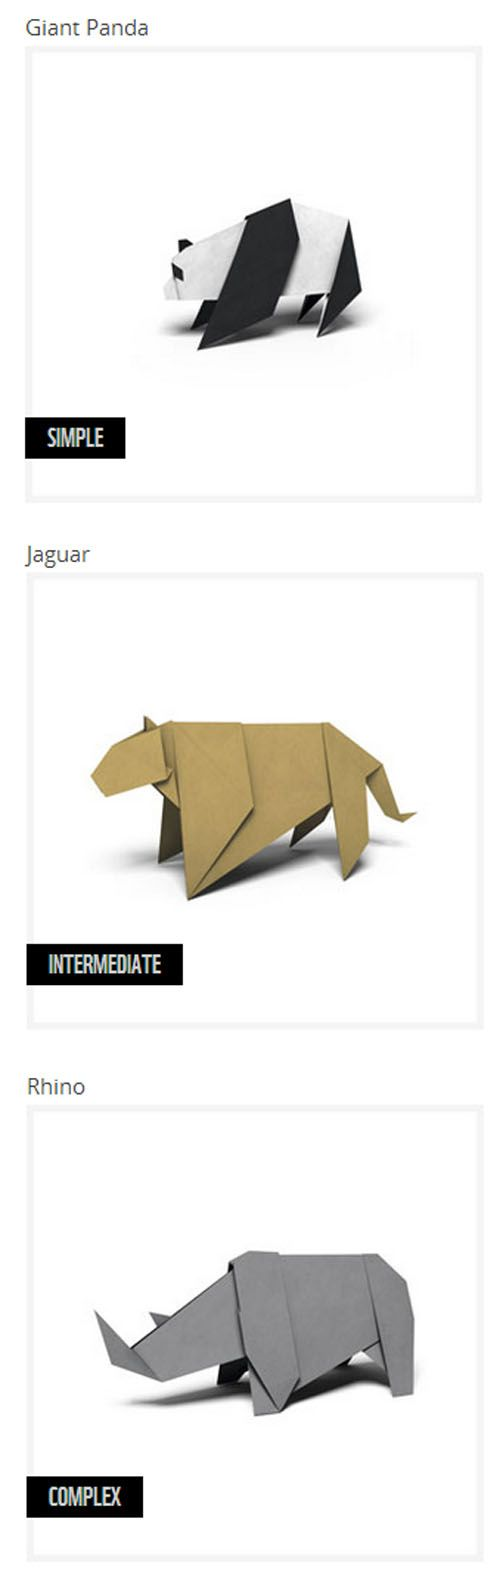 DIY :: Origami Patterns, pdf files (WWF :: http://worldwildlife.org/pages/origami-patterns?fb_action_ids=10152500921540640_action_types=og.recommends_source=other_multiline_object_map=%7B%2210152500921540640%22%3A471771416220085%7D_type_map=%7B%2210152500921540640%22%3A%22og.recommends%22%7D_ref_map=%5B%5D )